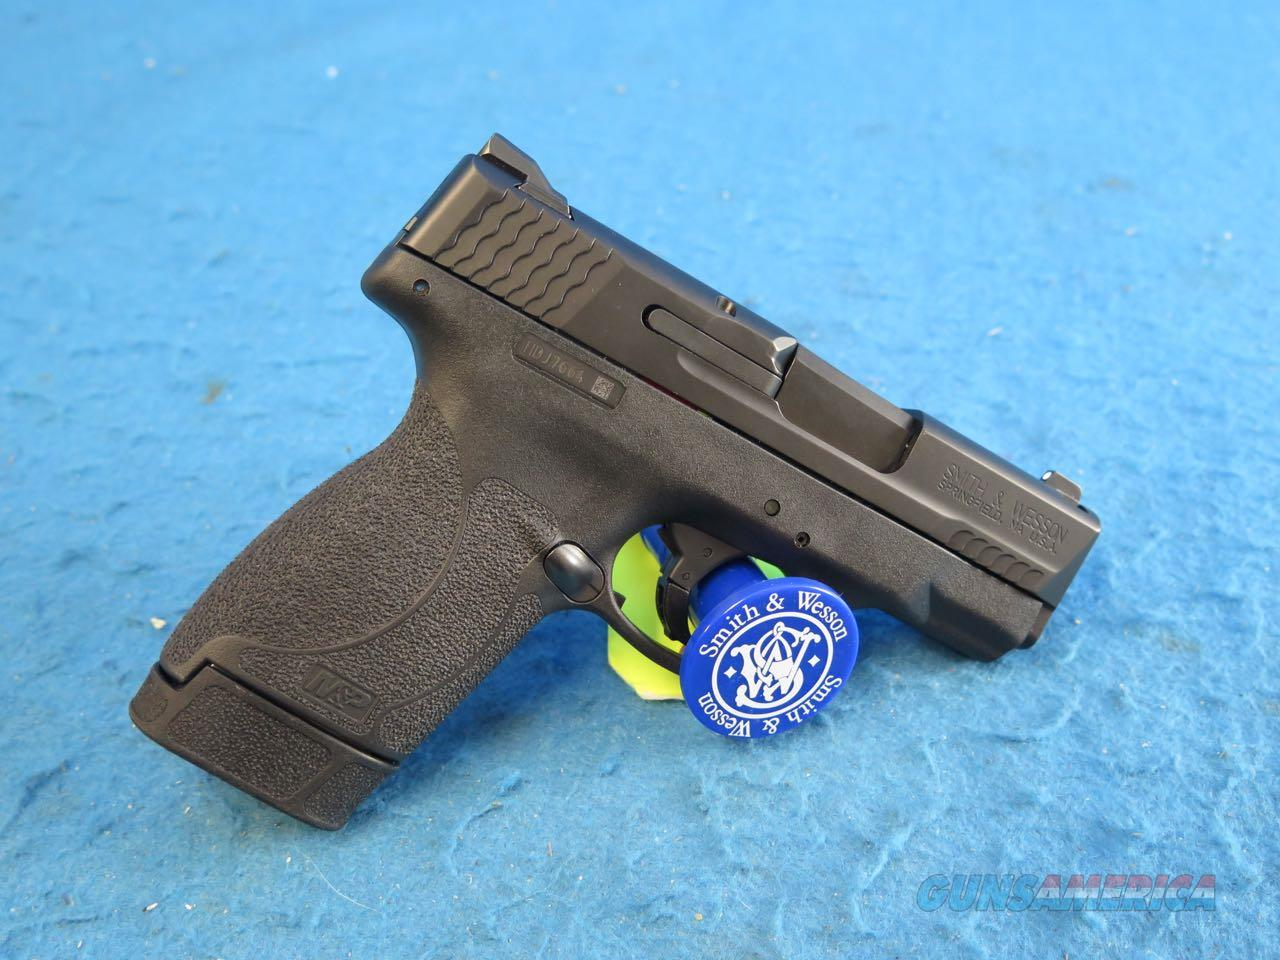 Smith & Wesson M&P Shield45 .45 ACP Semi Auto Pistol W/TS SKU 180022 **New**  Guns > Pistols > Smith & Wesson Pistols - Autos > Shield